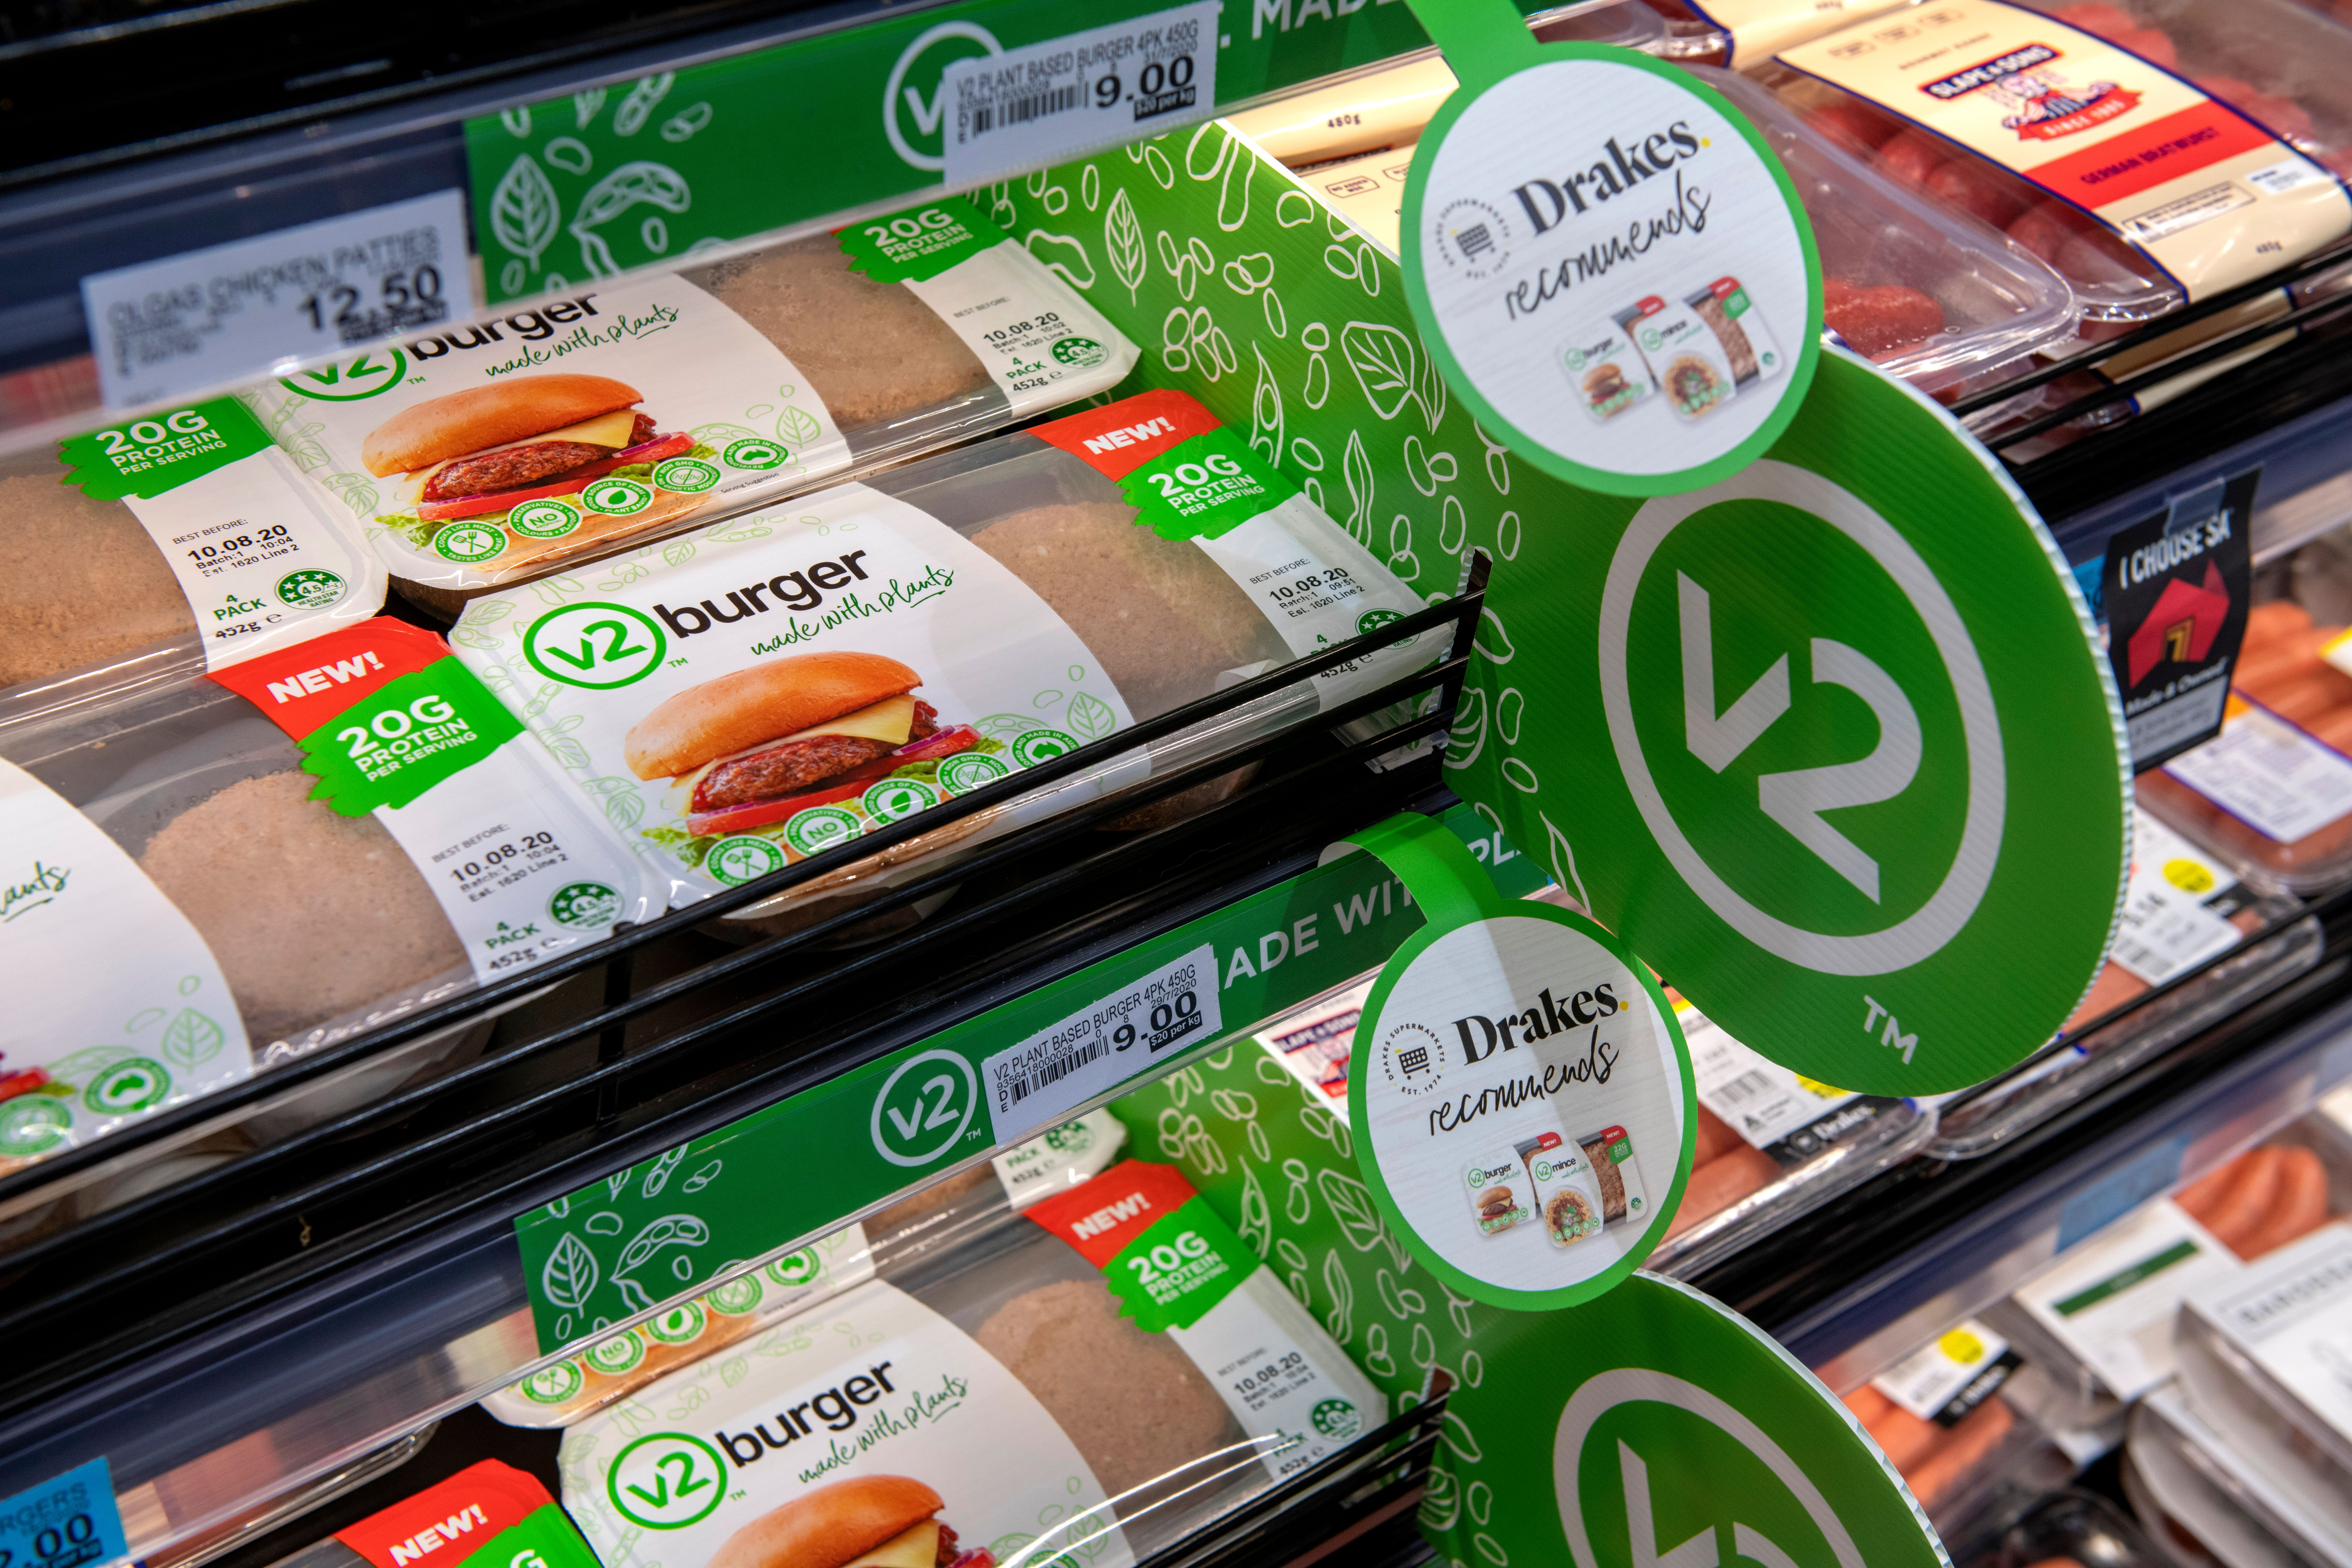 Tasty plant based v2burger and v2mince are available in the meat aisle at a comparable price to beef